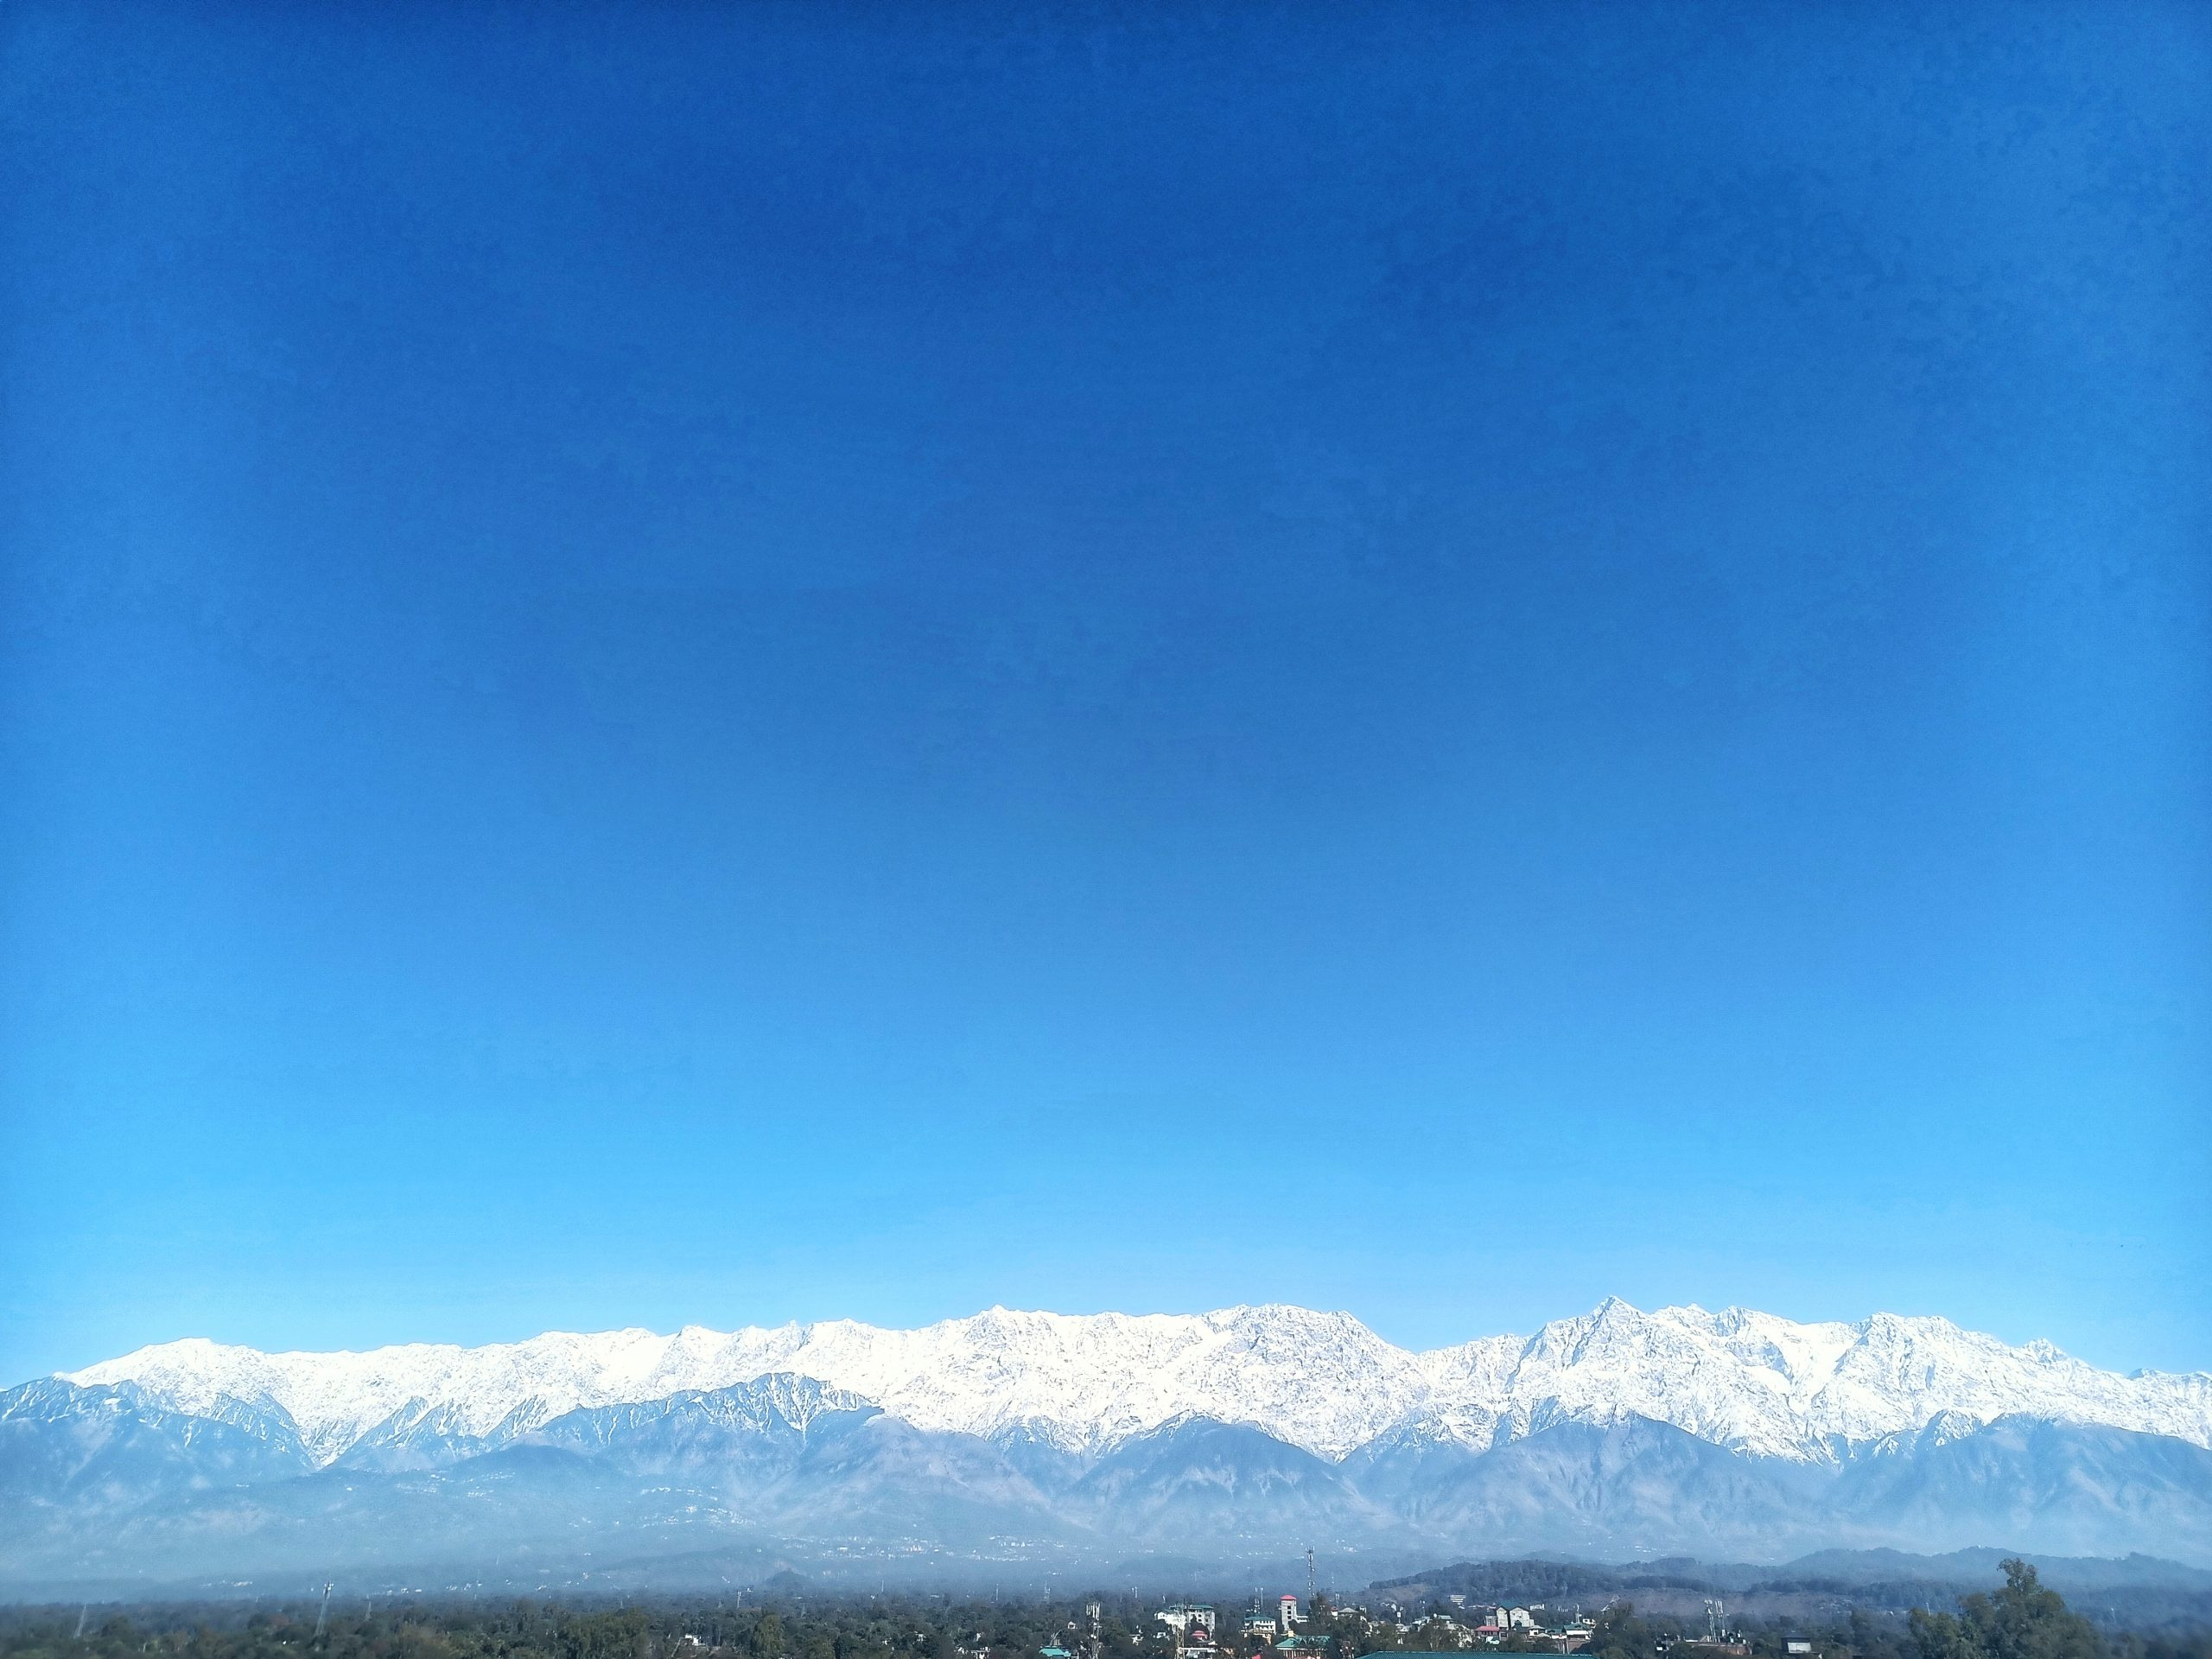 Sky and snowy mountains